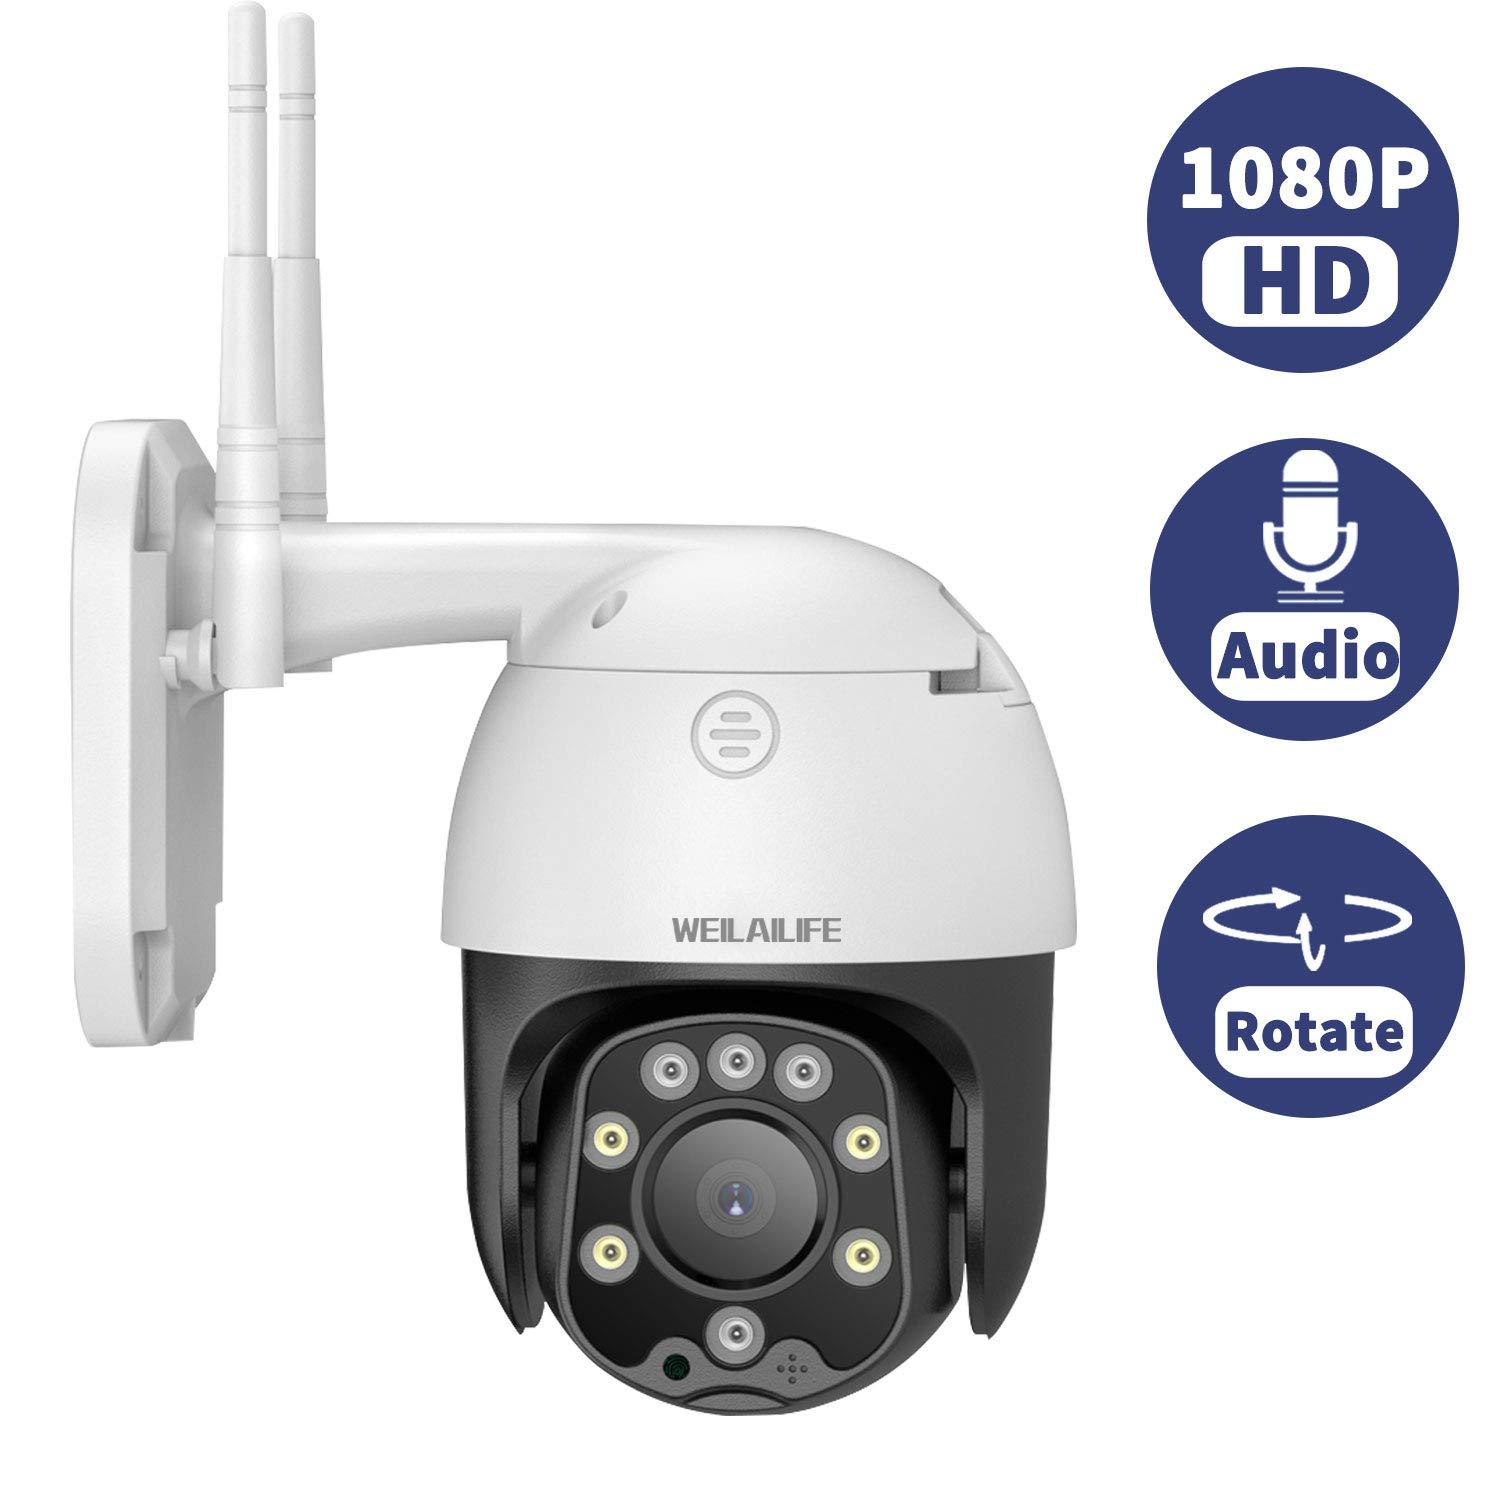 Home Outdoor PTZ Security Camera, 1080P 2.0 Megapixel Wireless Surveillance Camera with Pan/Title, Built in SD Card Slot, Night Vision, App Remote Monitor, Two Way Audio